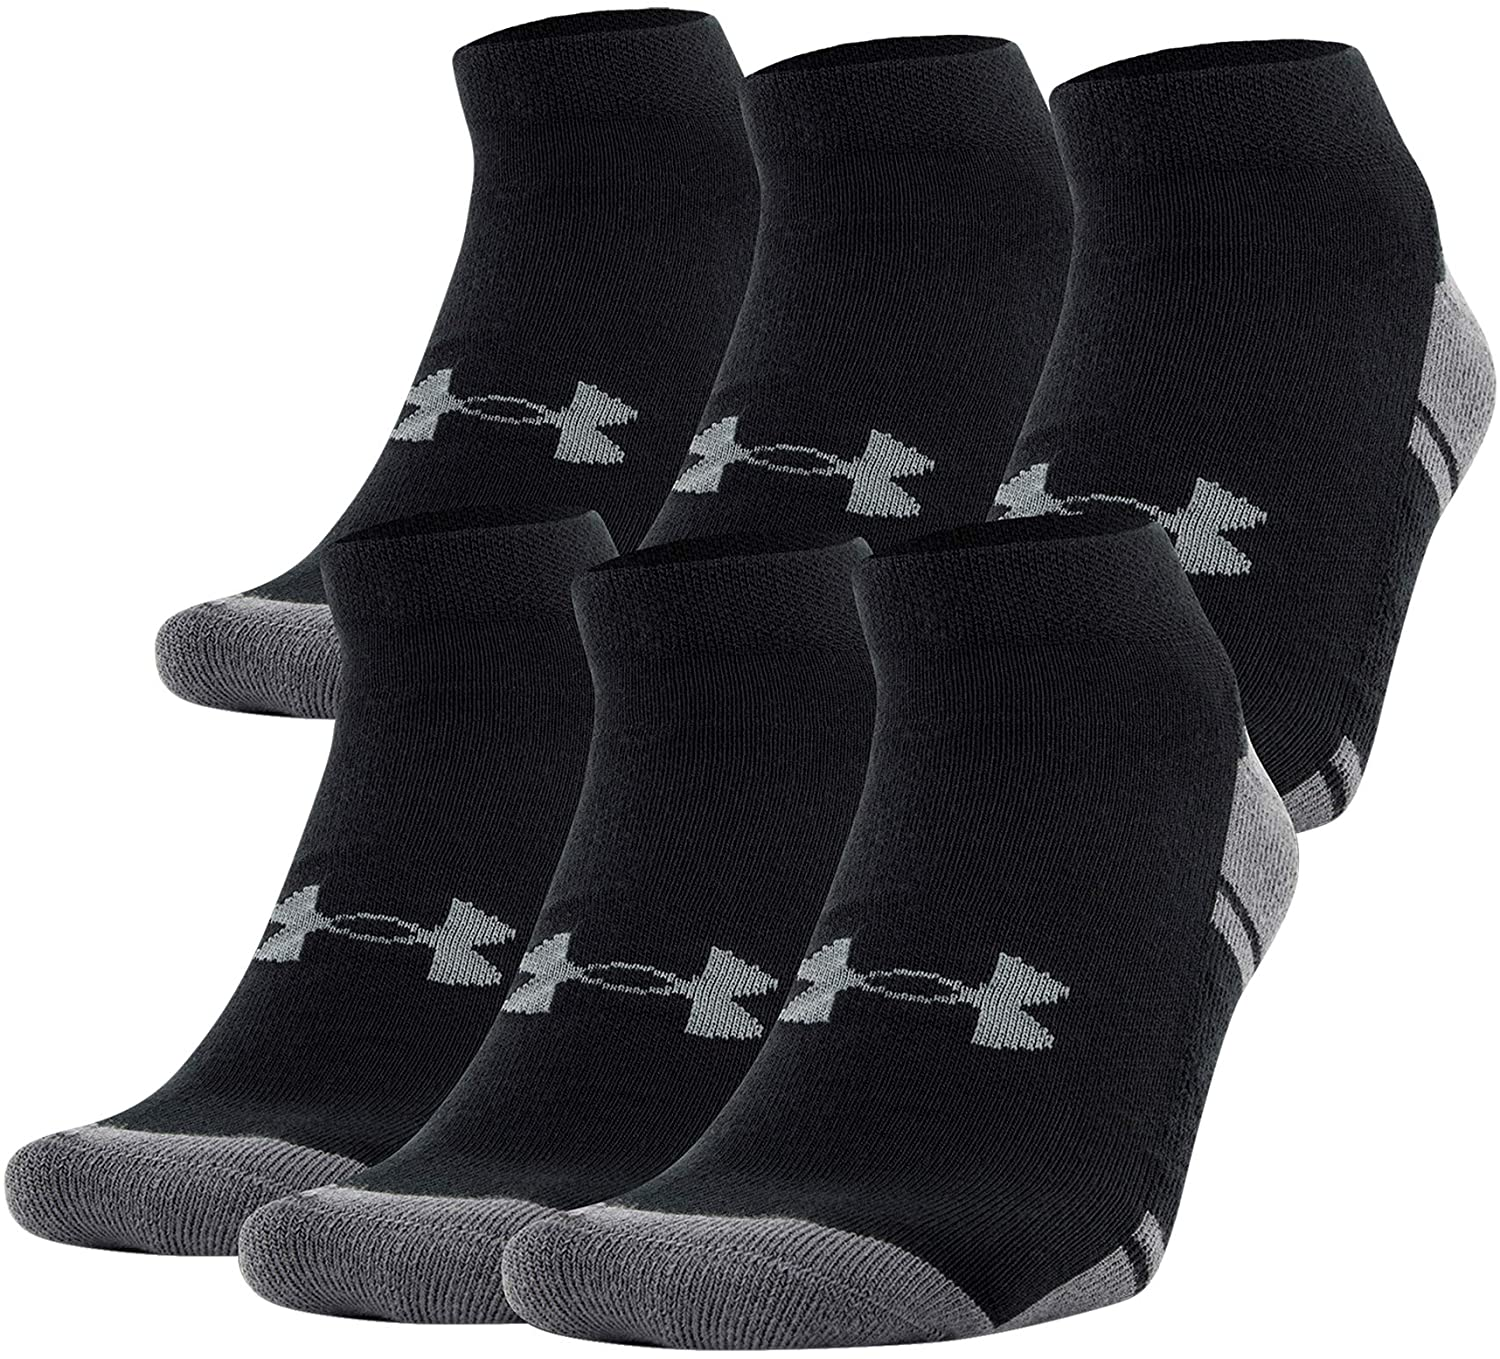 Under Armour Adult Resistor 3.0 Low Cut Socks, 6-Pairs : Clothing